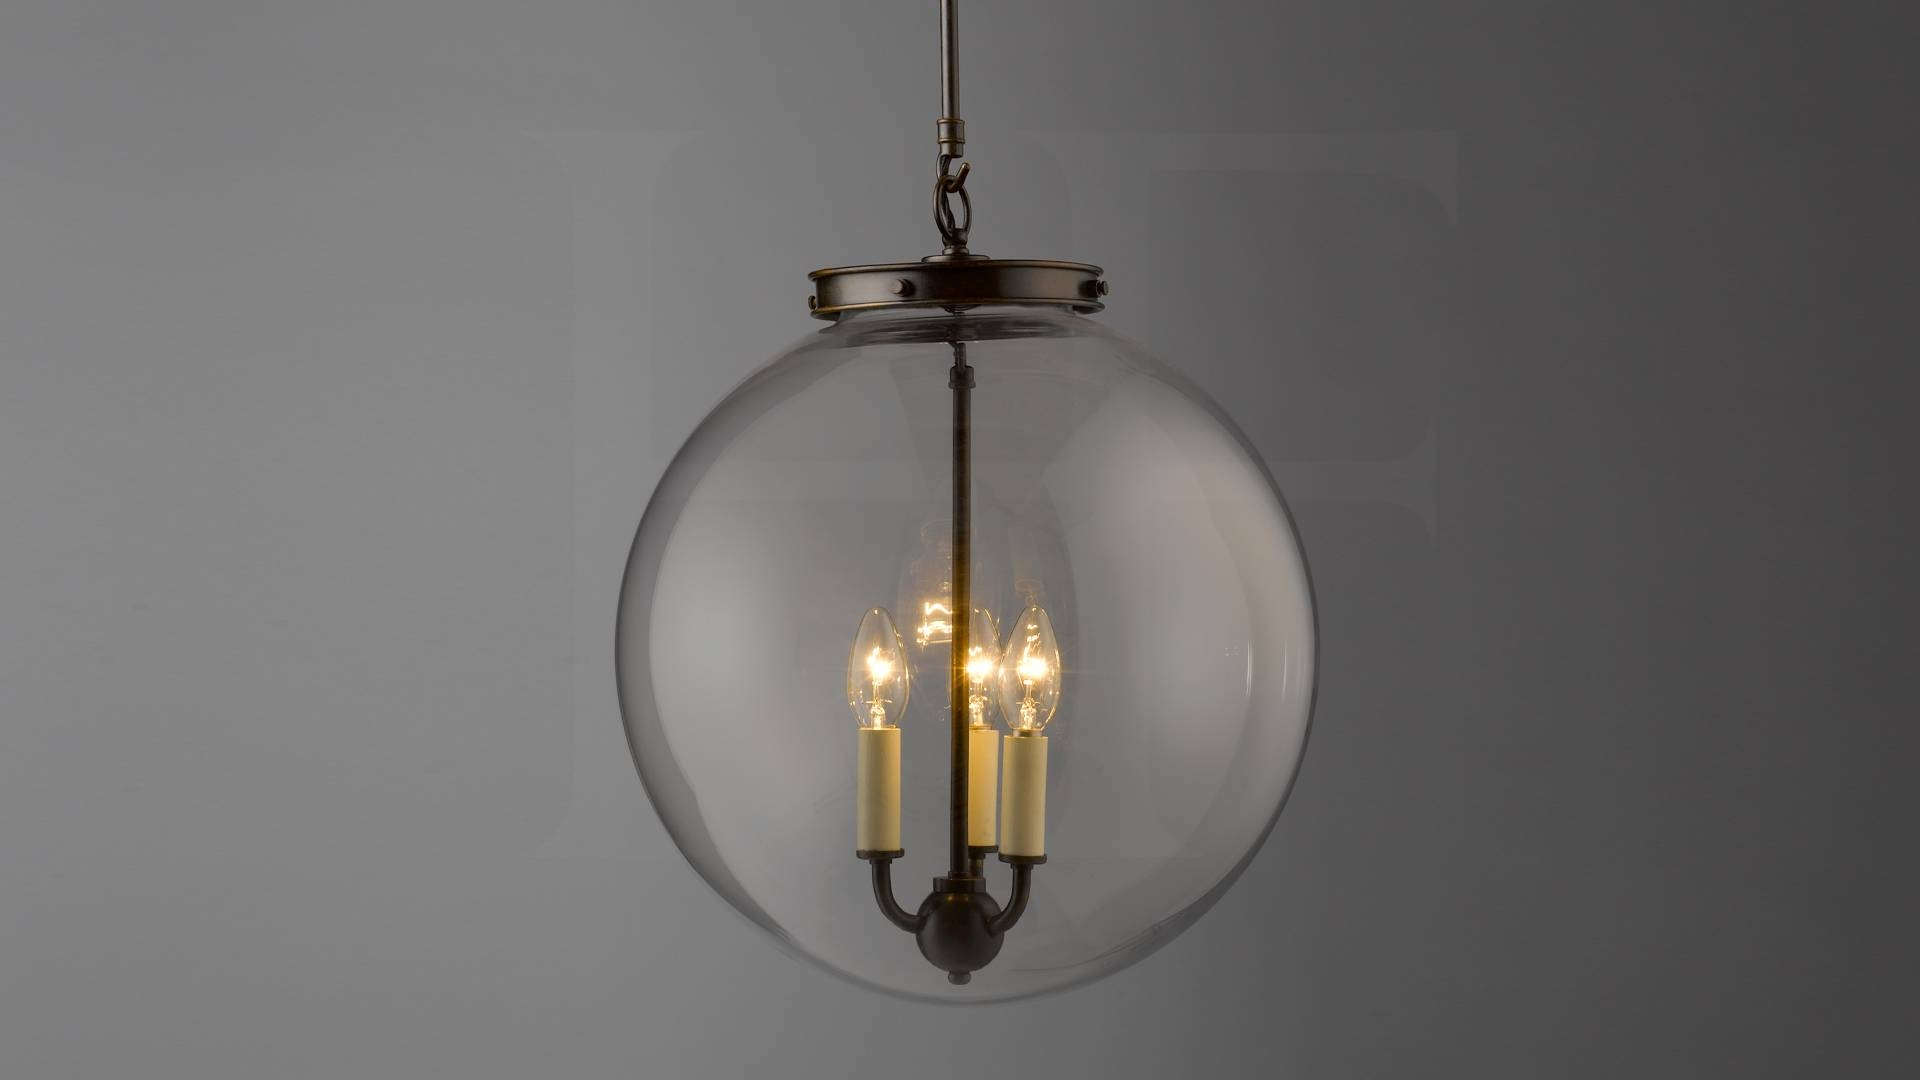 Buy Hall Lighting Online, Hall Lights - Chelsea, South West London, Uk in Glass Ball Pendant Lights Uk (Image 5 of 15)